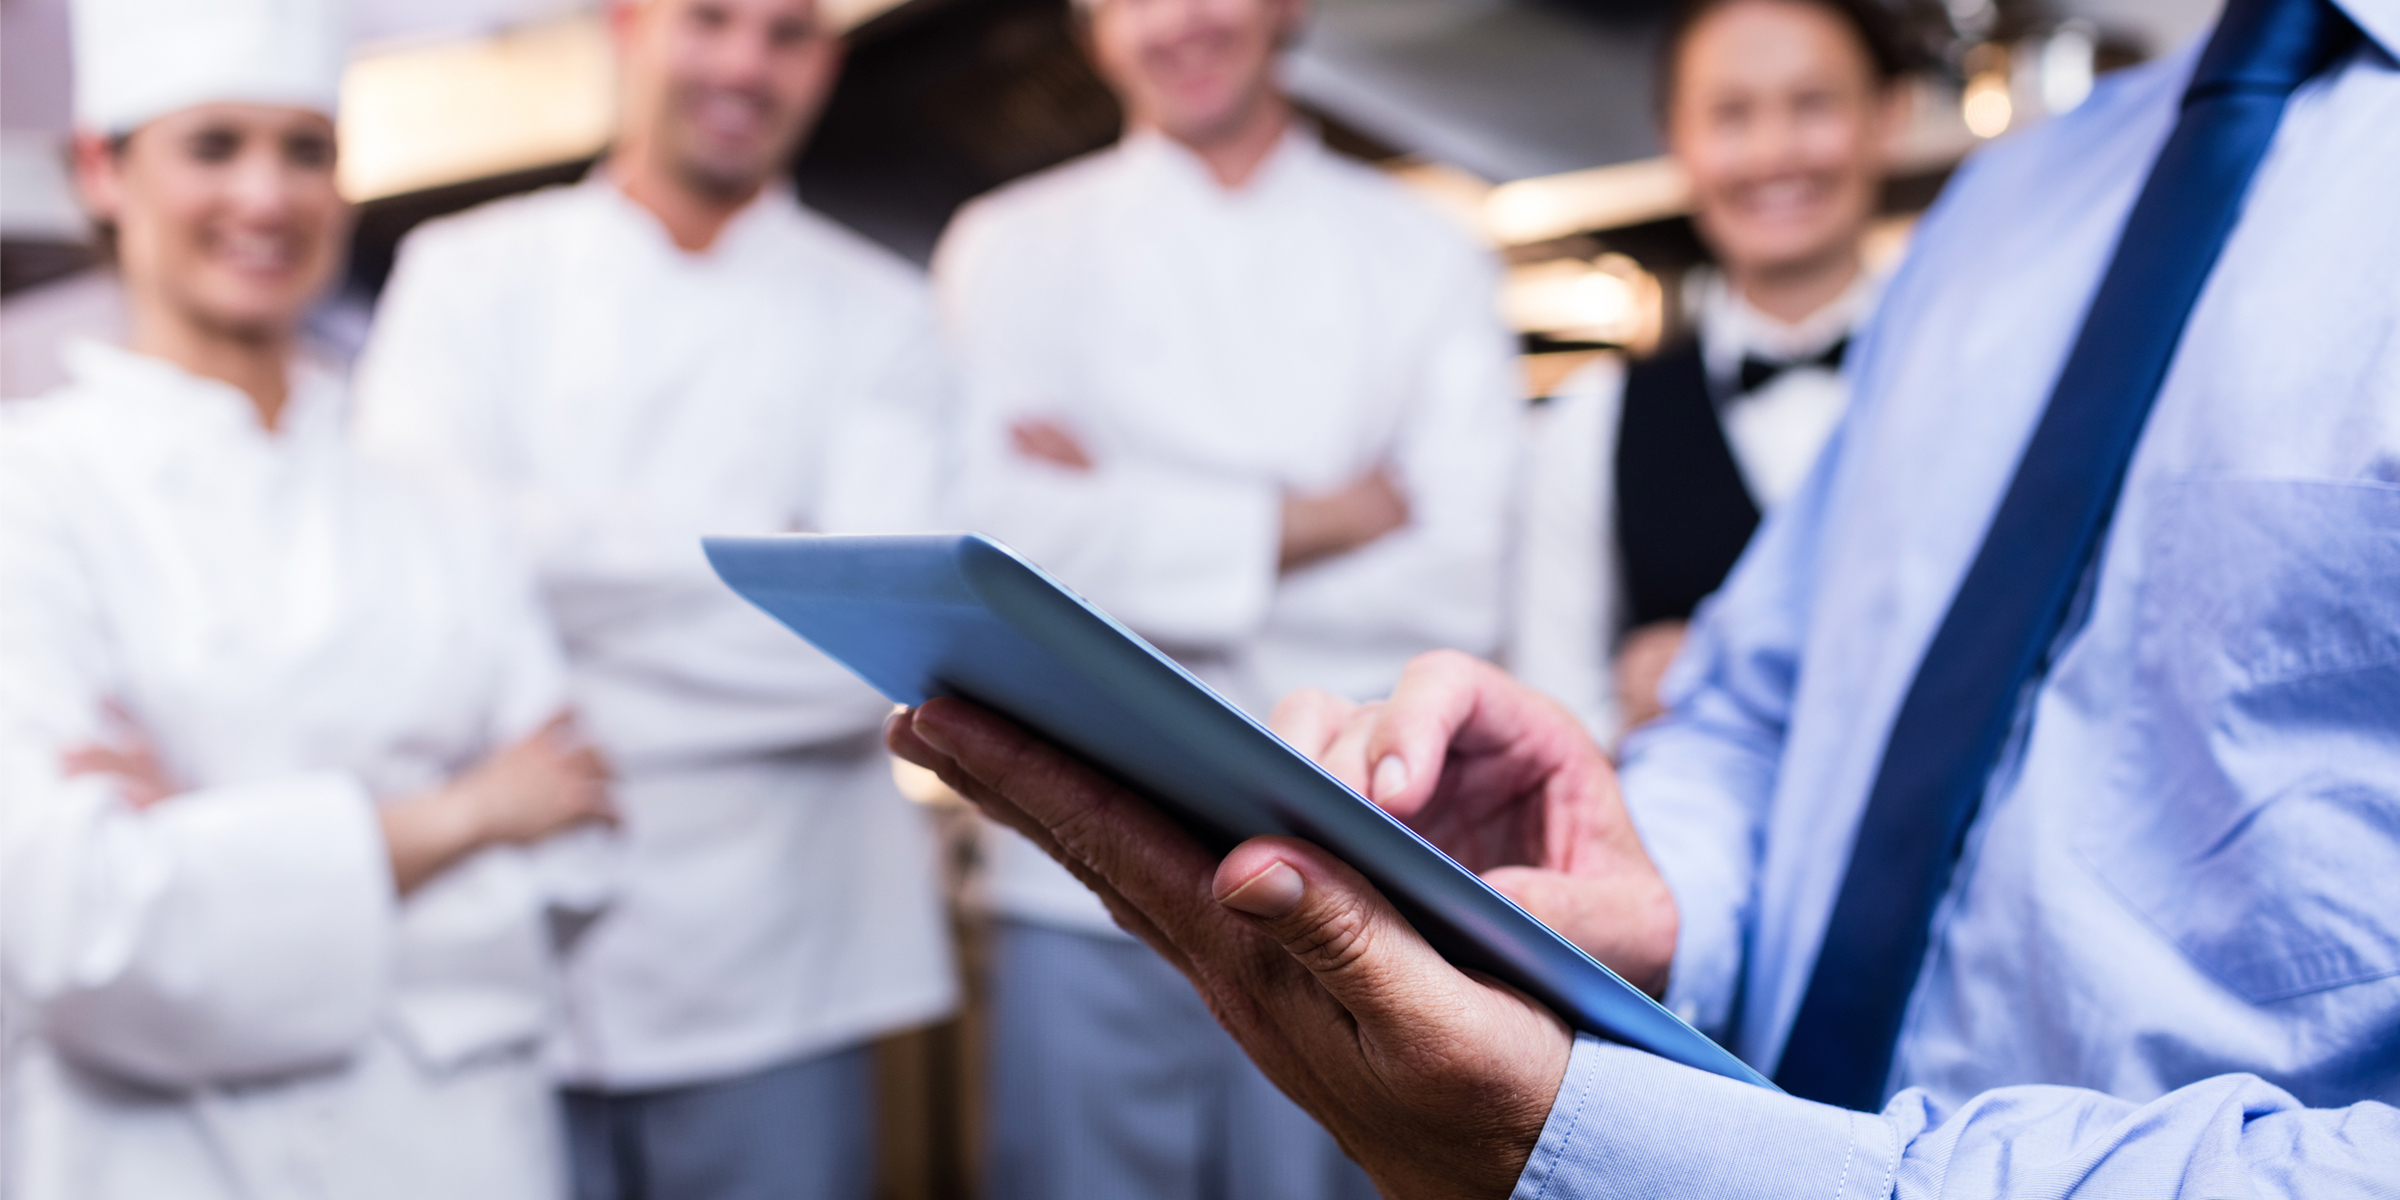 iPad for Employee Training: Why Use Integrated Learning Management Systems?